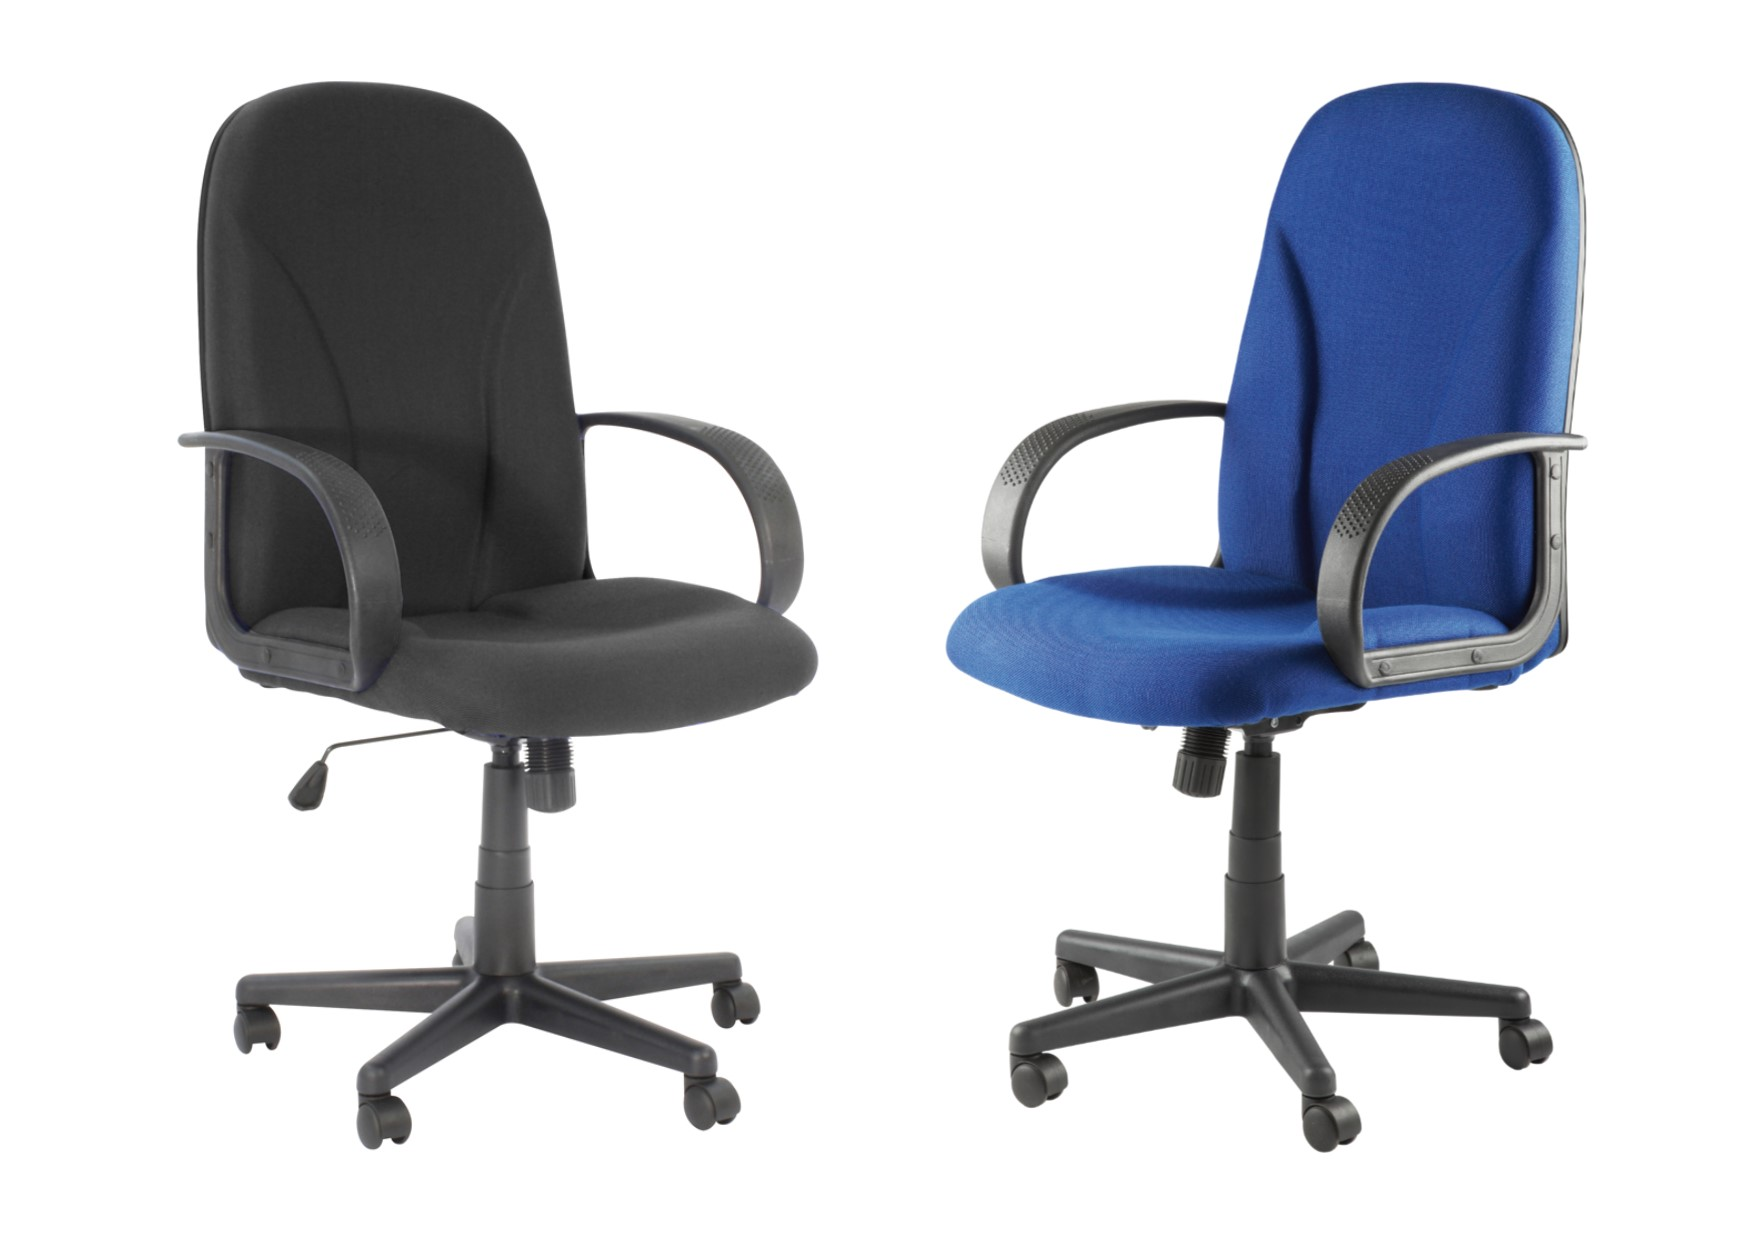 Boston classic high back fabric office chair black or blue